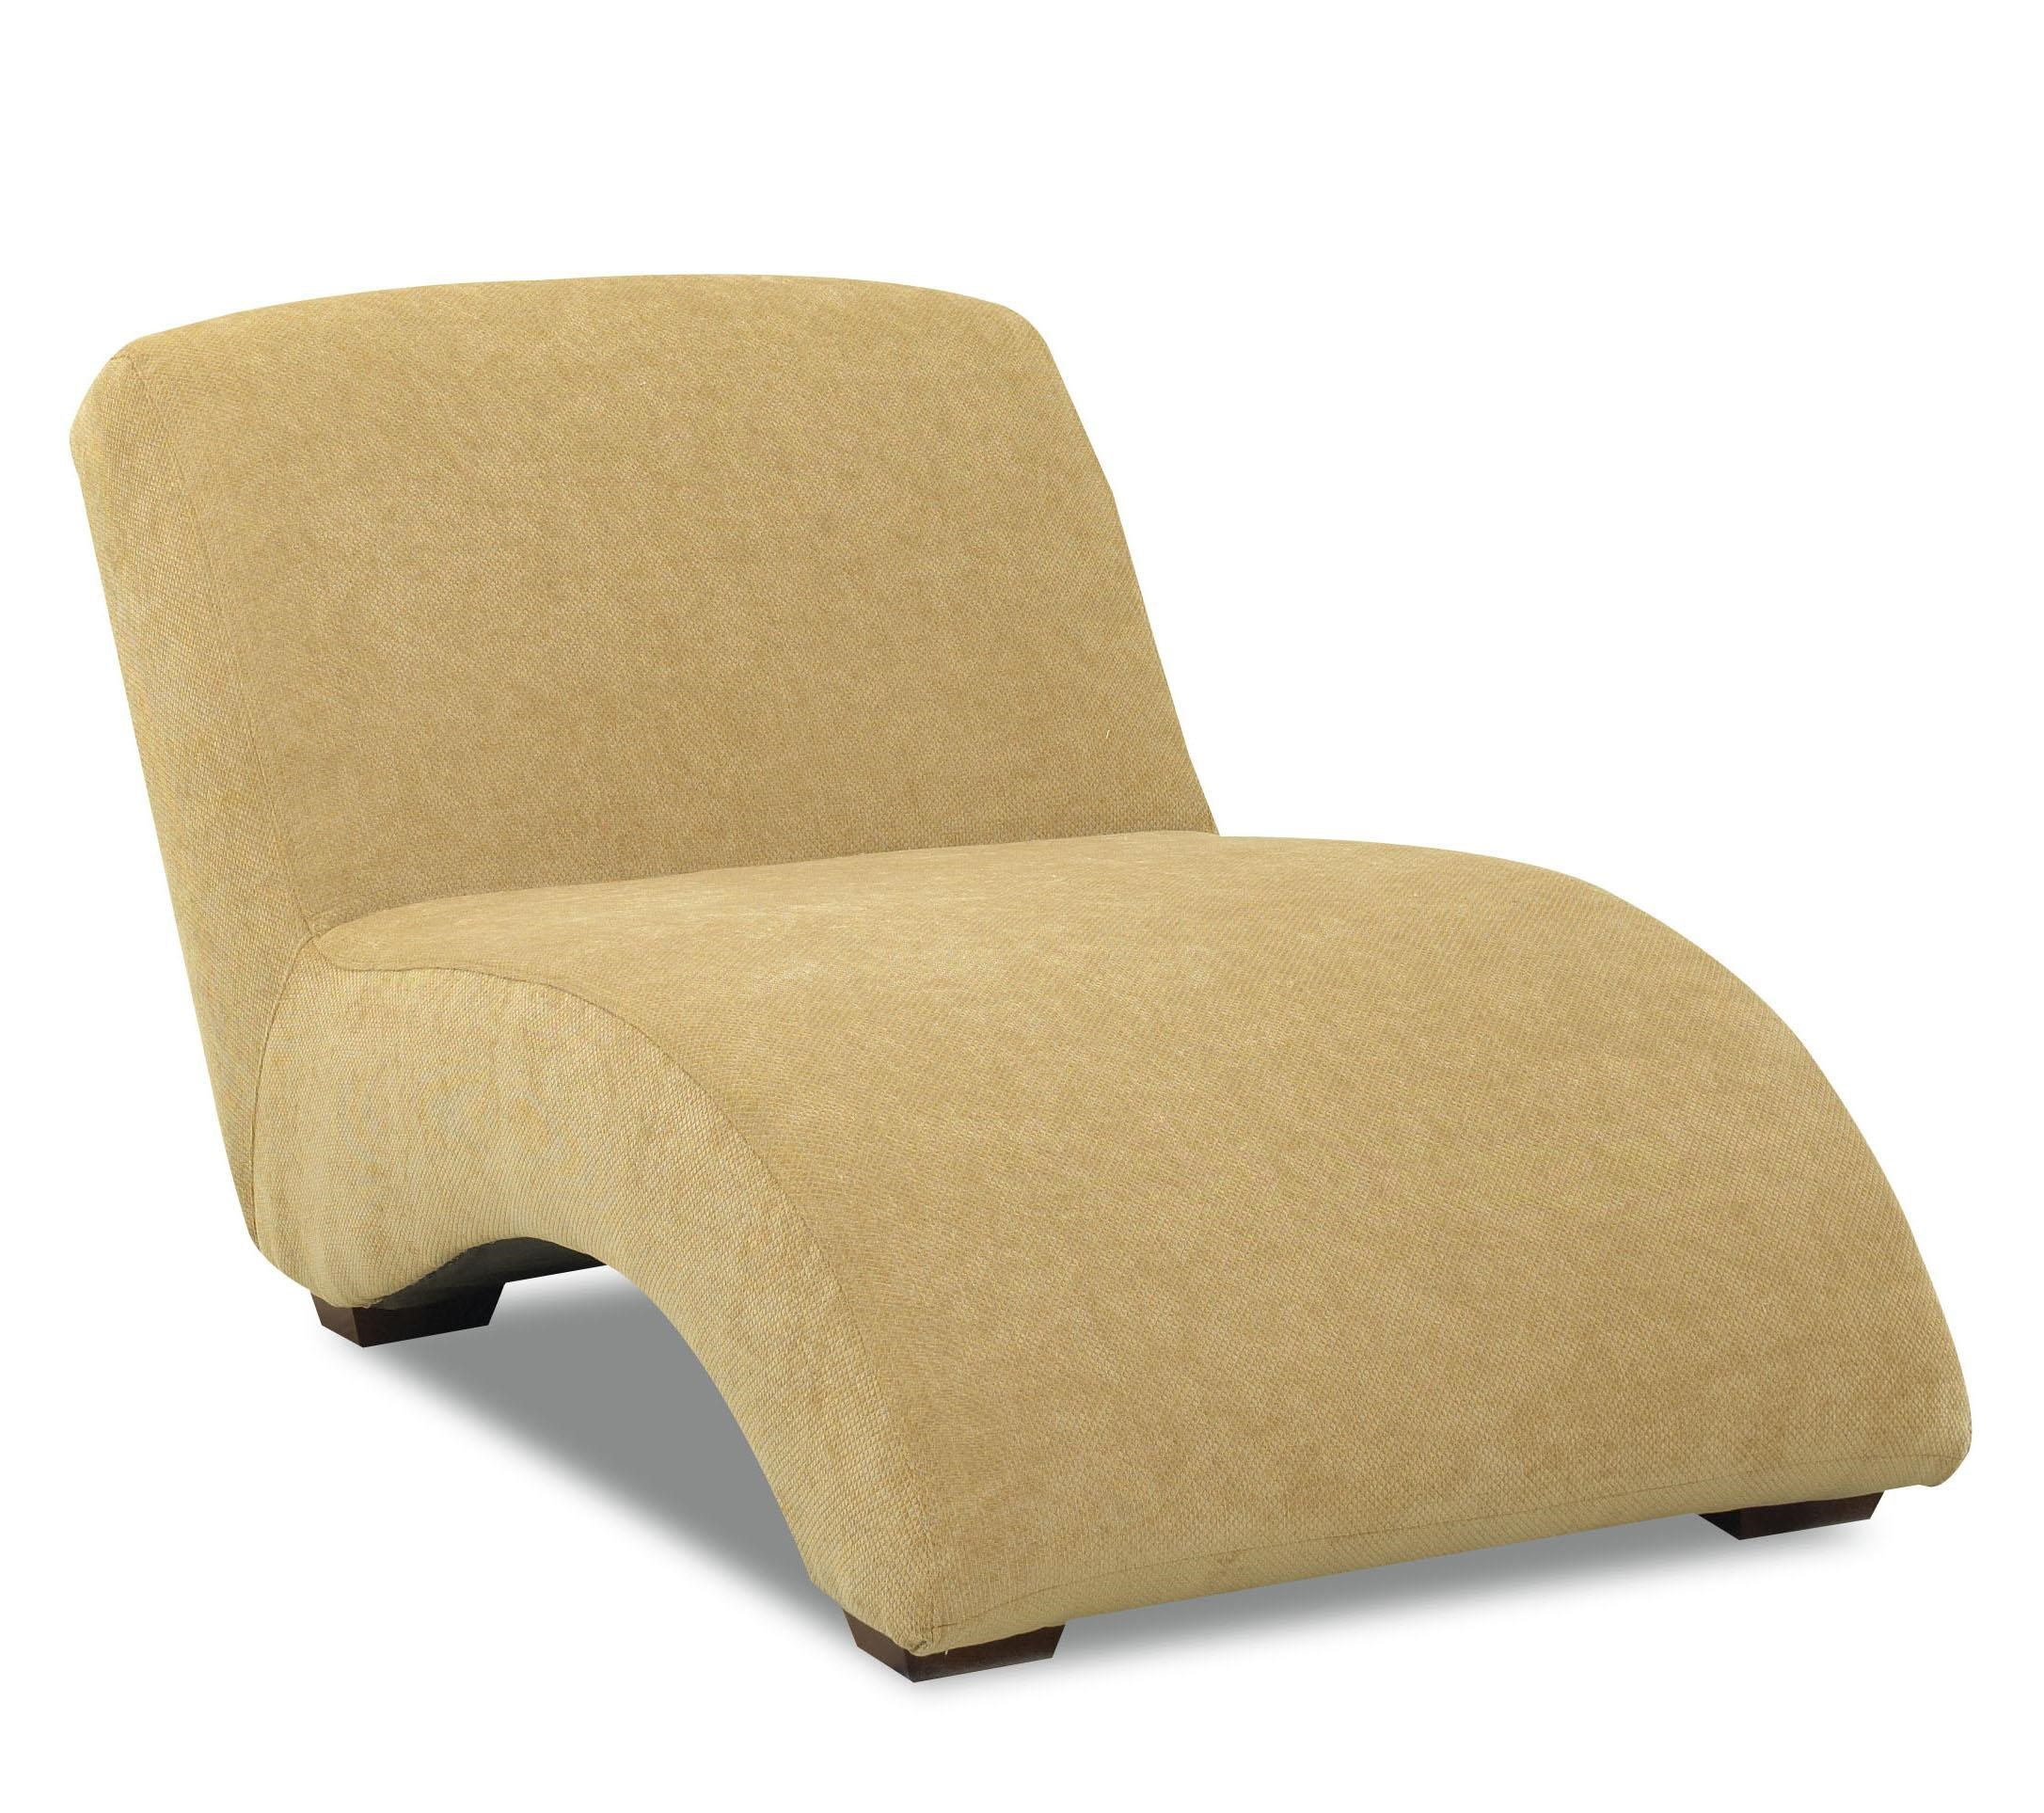 Klaussner Chairs And AccentsCelebration Chaise Lounge ...